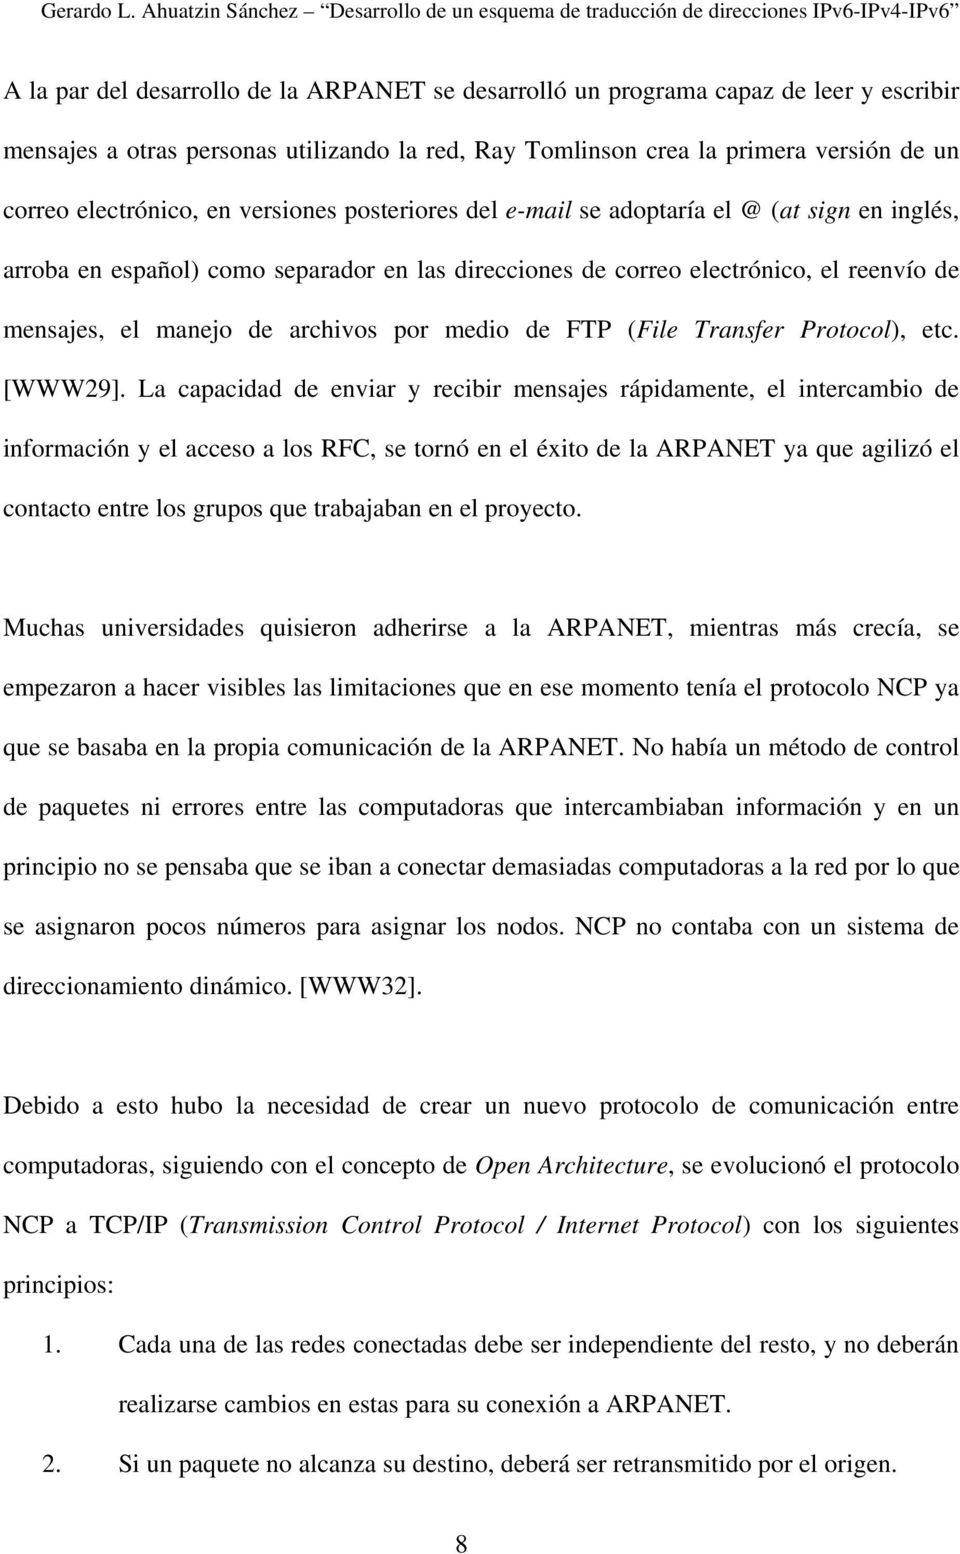 medio de FTP (File Transfer Protocol), etc. [WWW29].